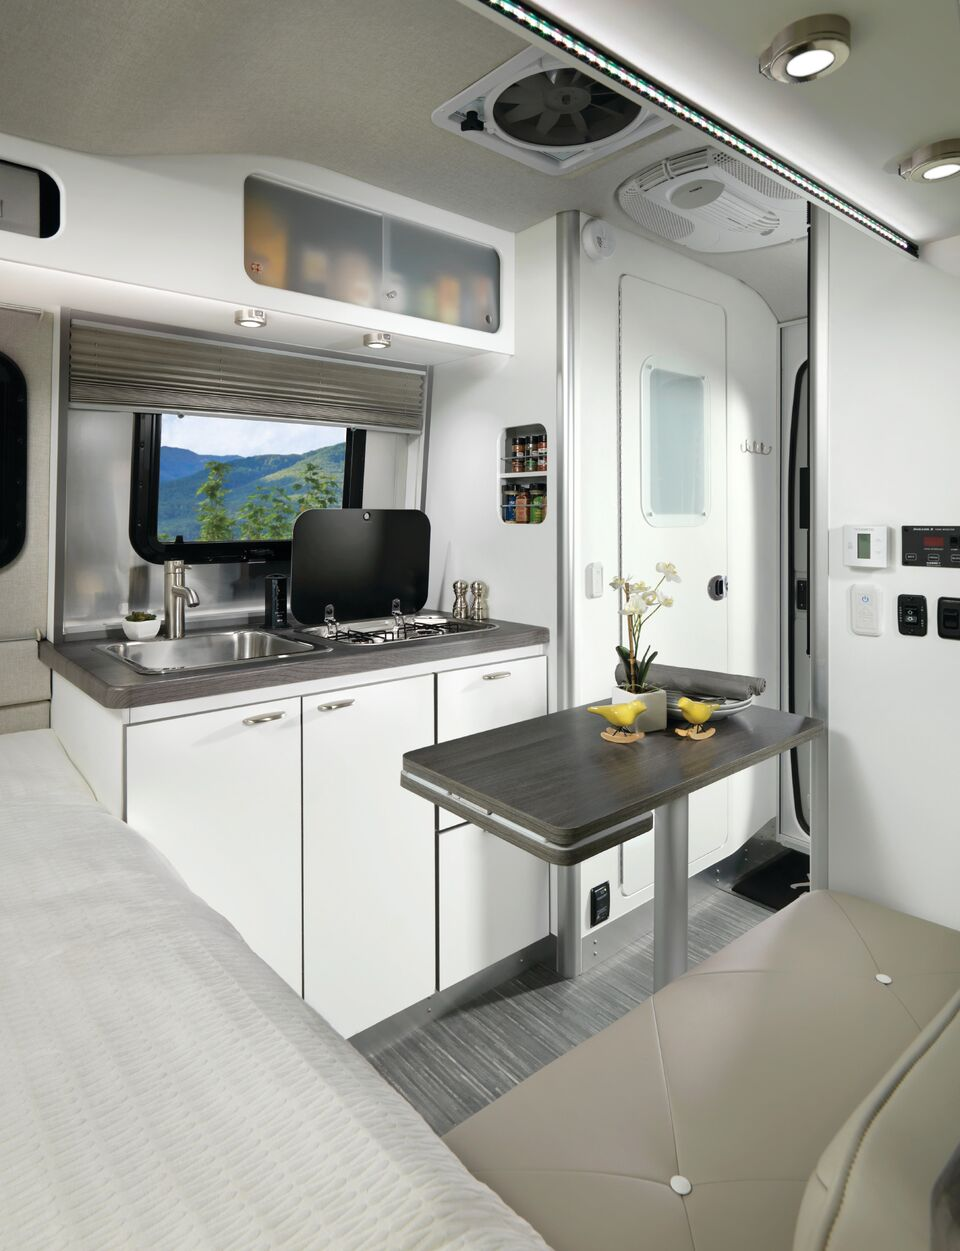 Windish RV Airstream Nest Travel Trailer Kitchen